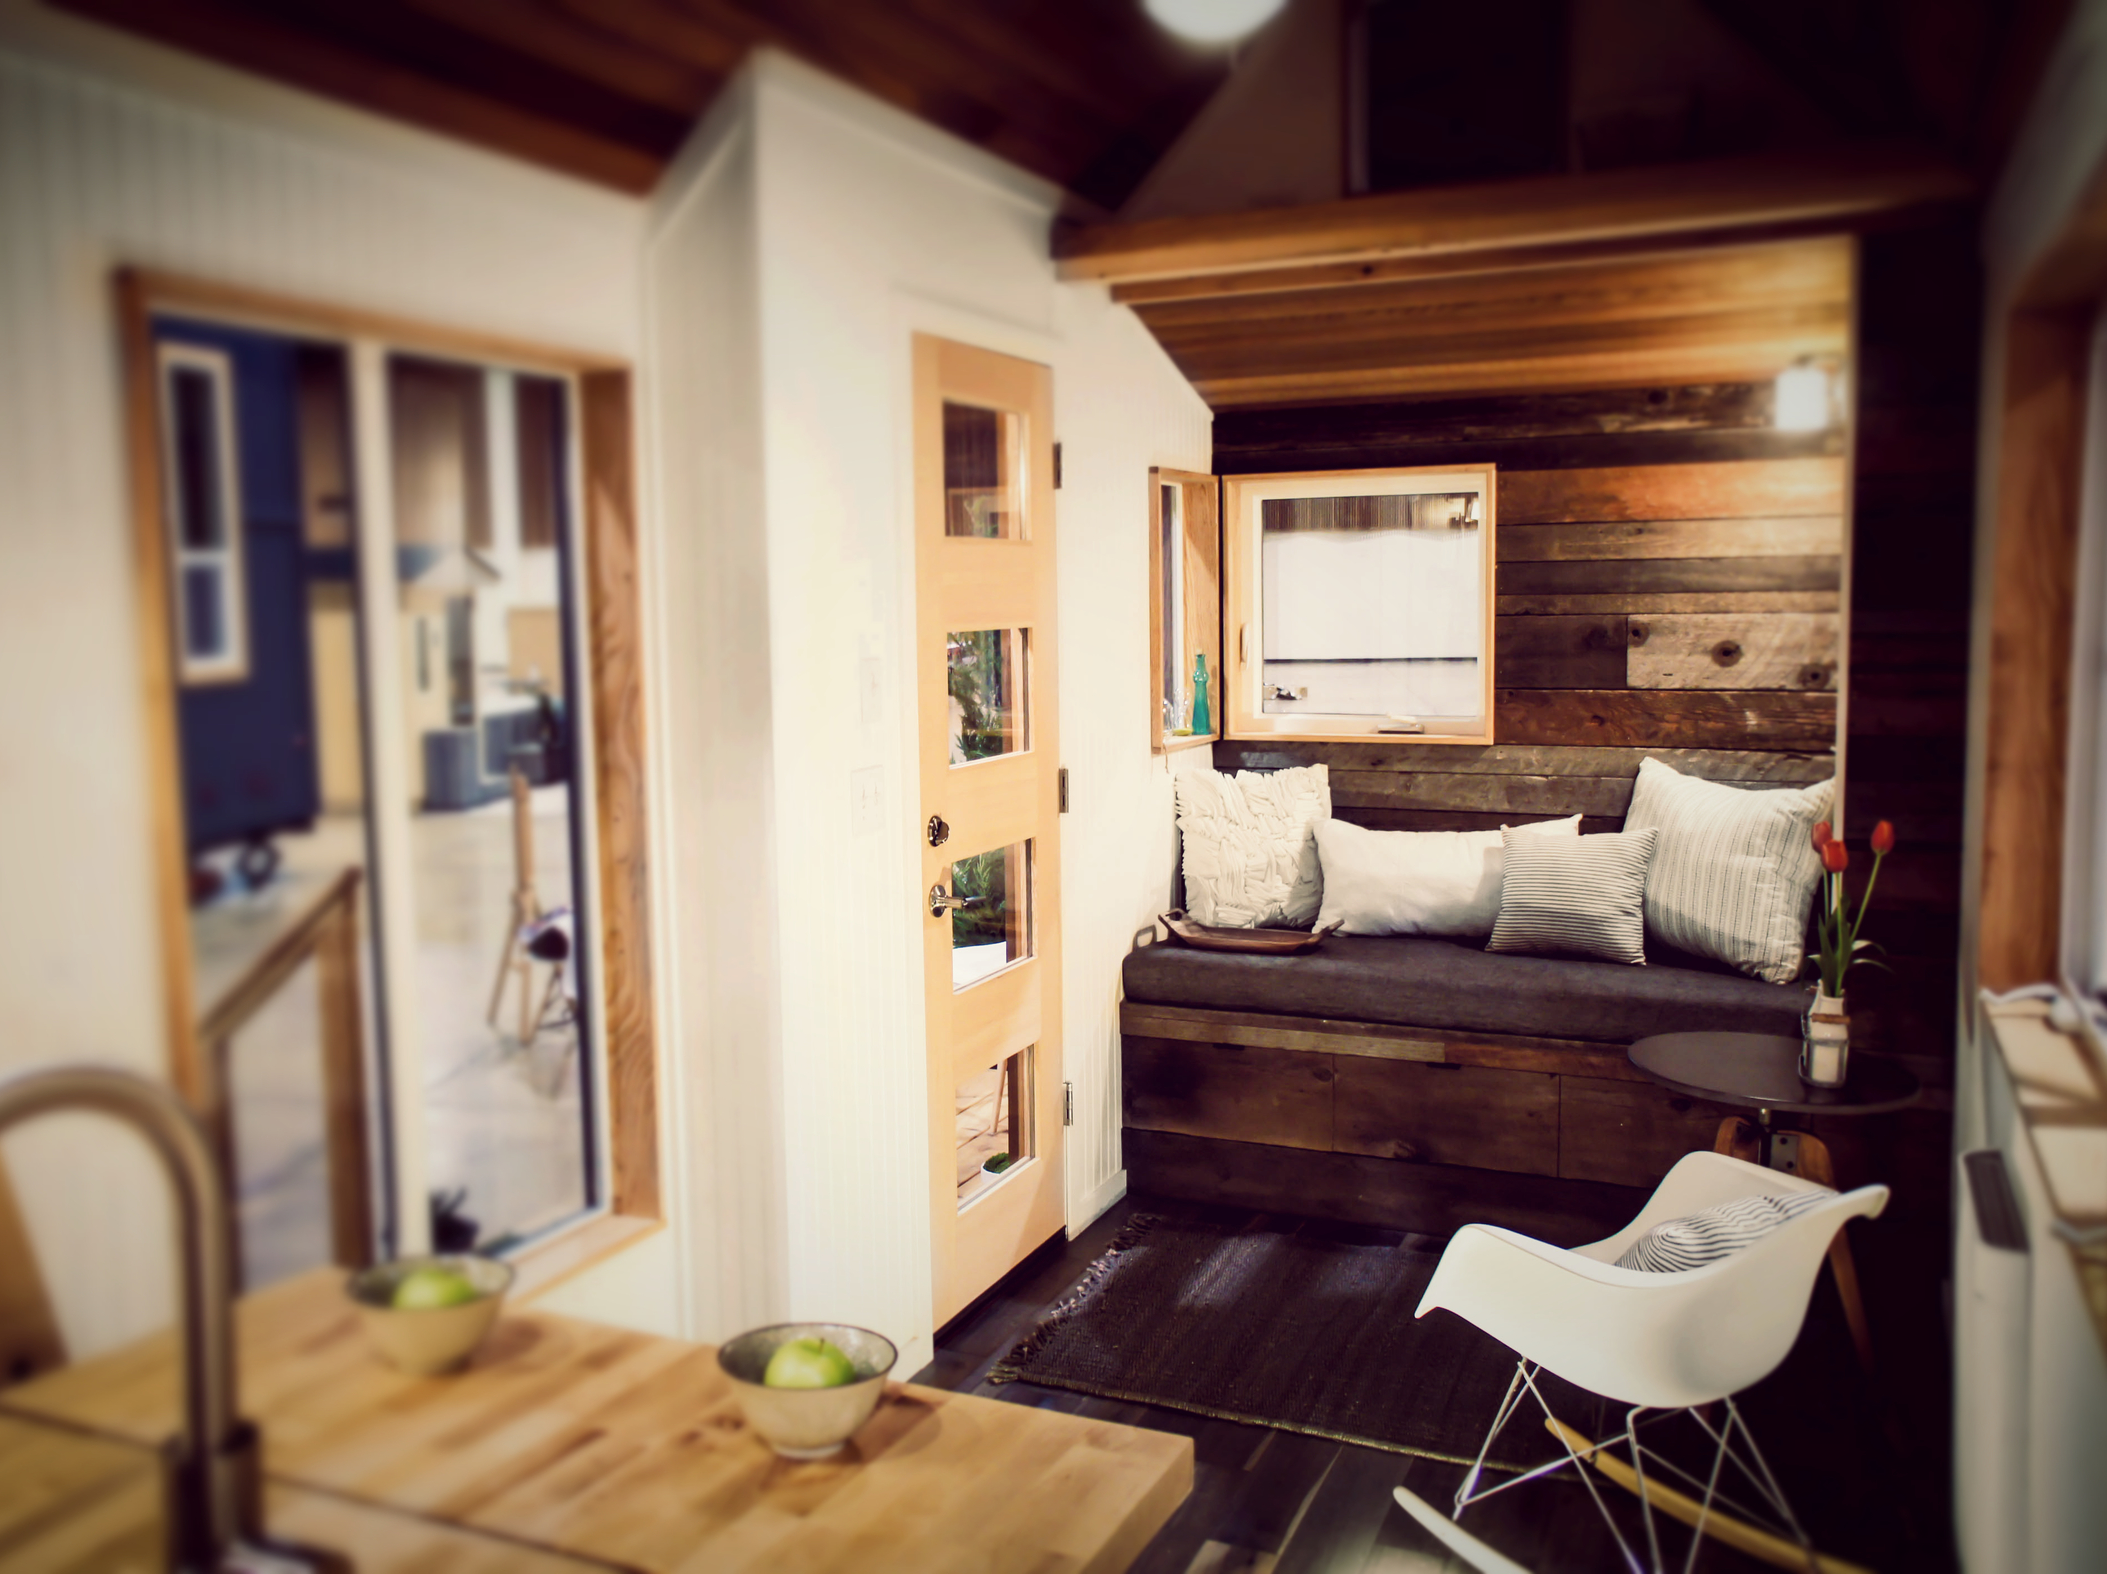 22' Kootenay with nook extension